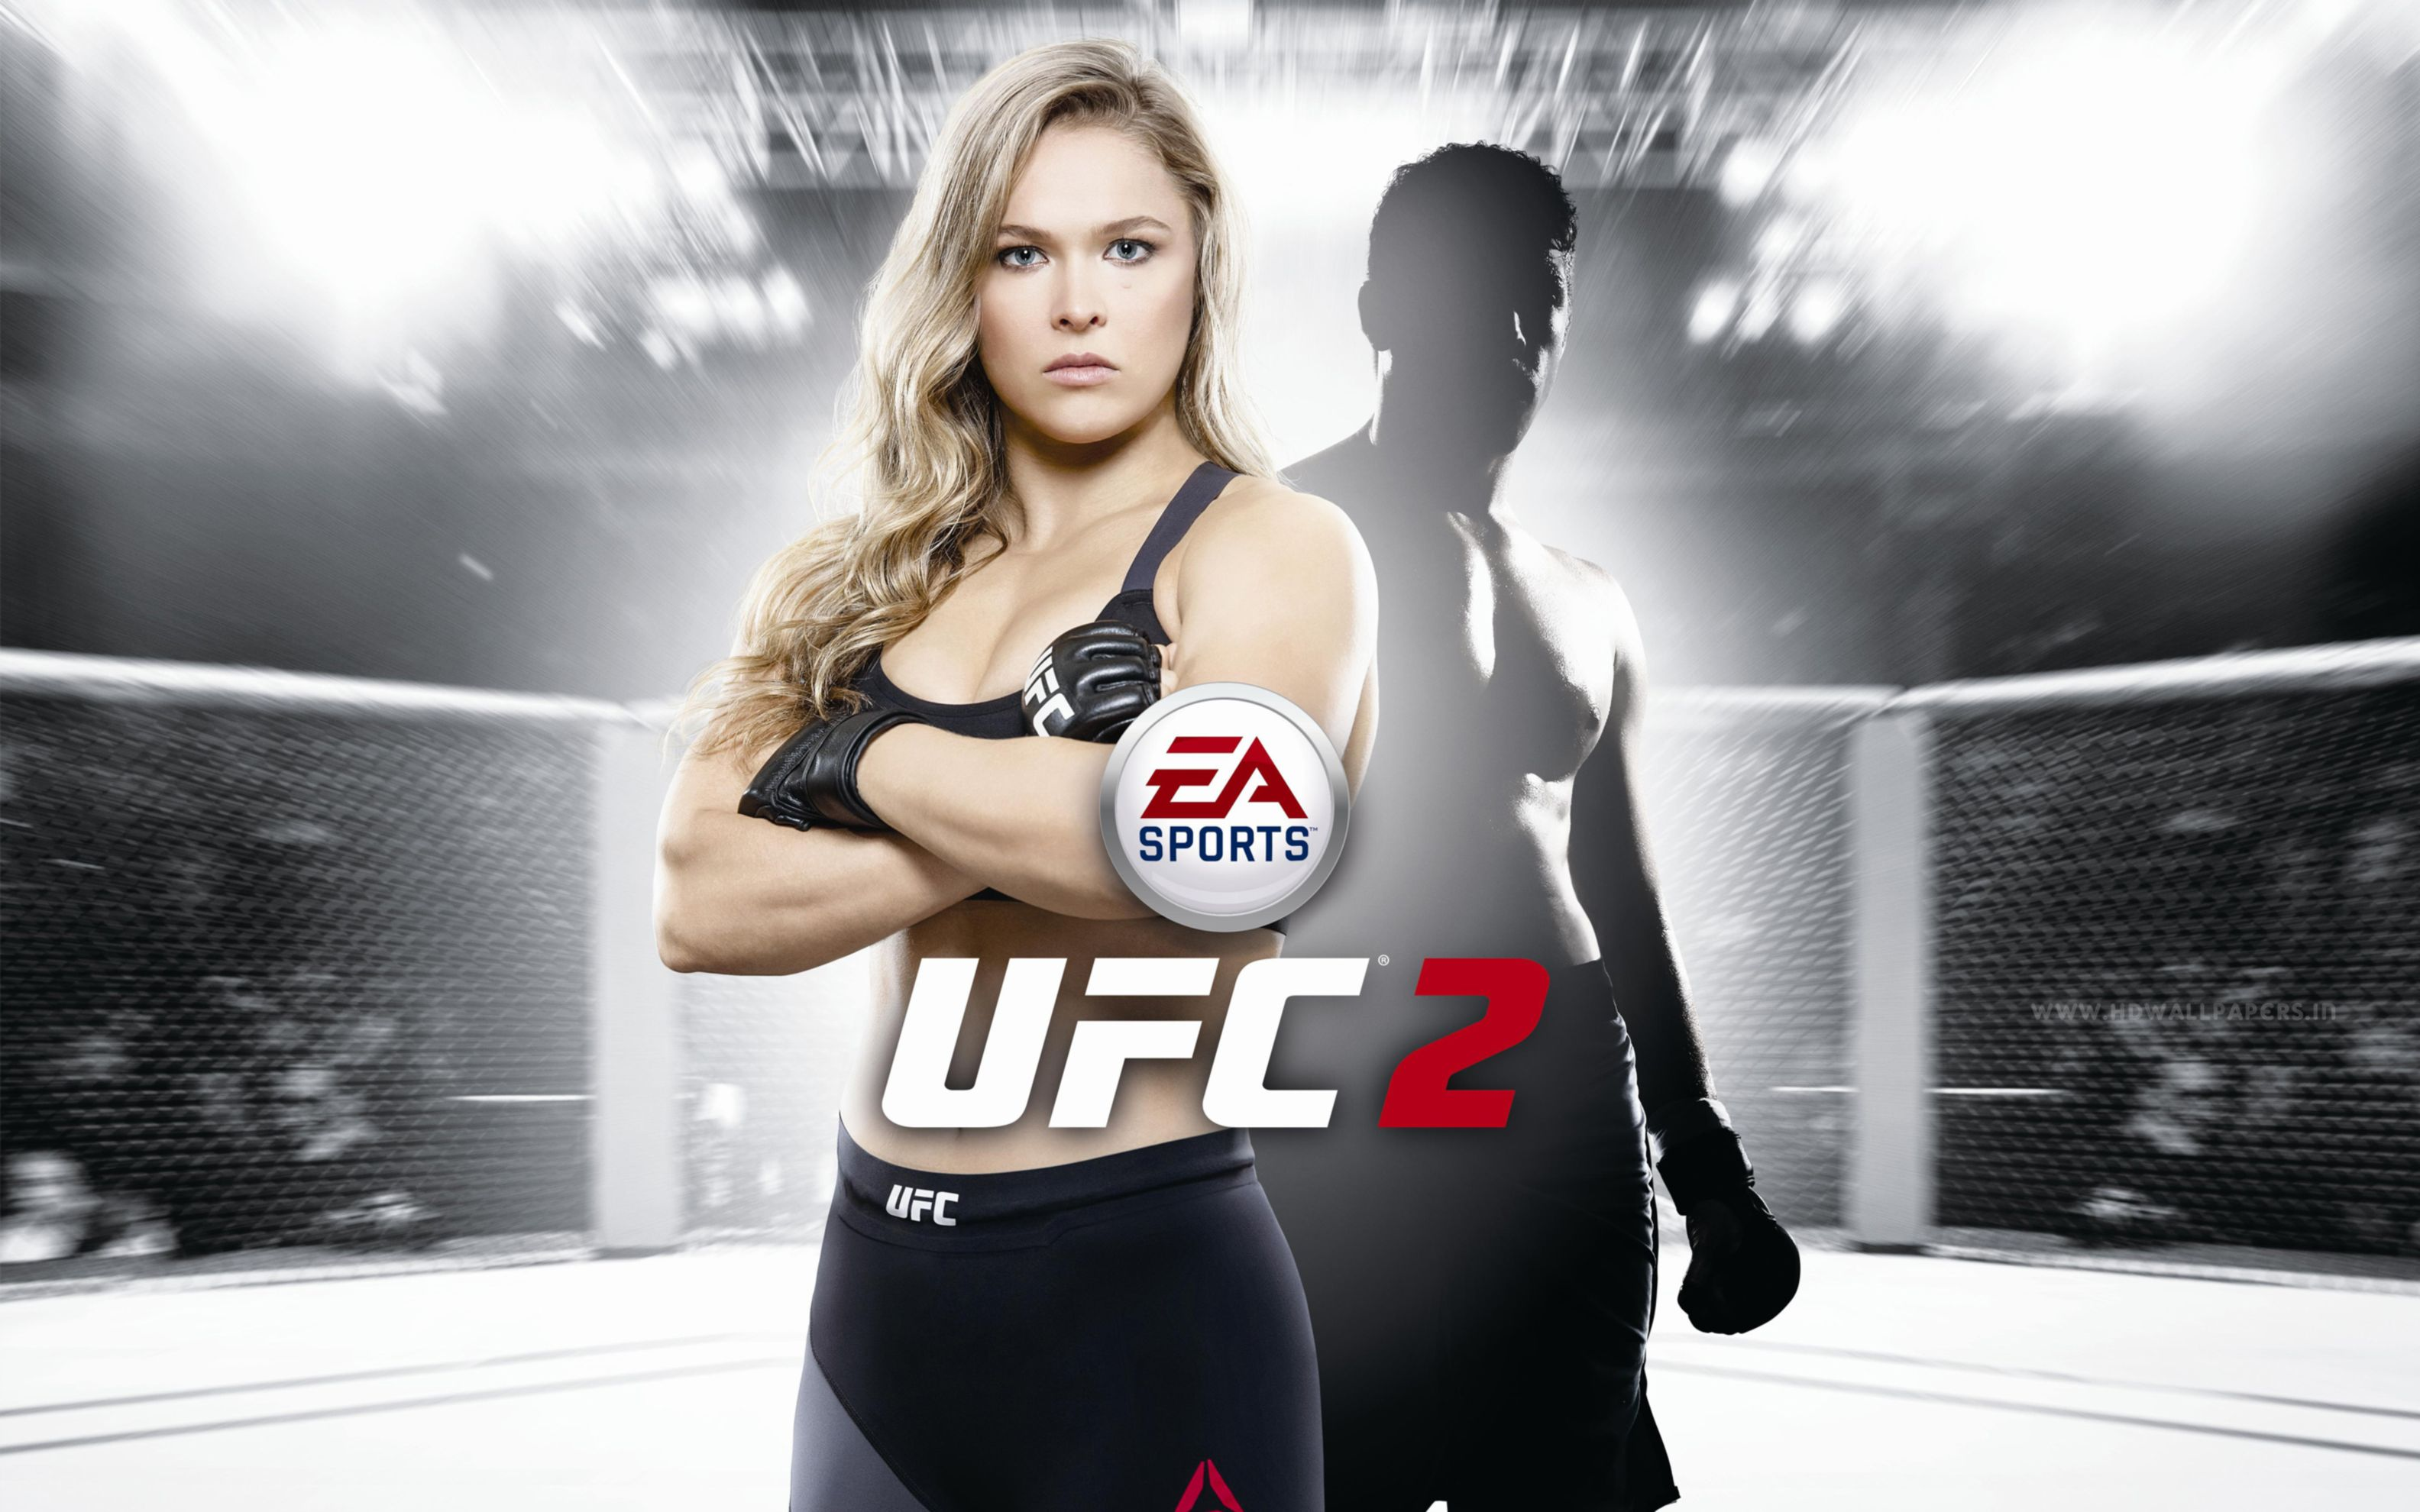 Download free HD Ea Sports UFC 2 Wide Wallpaper, image